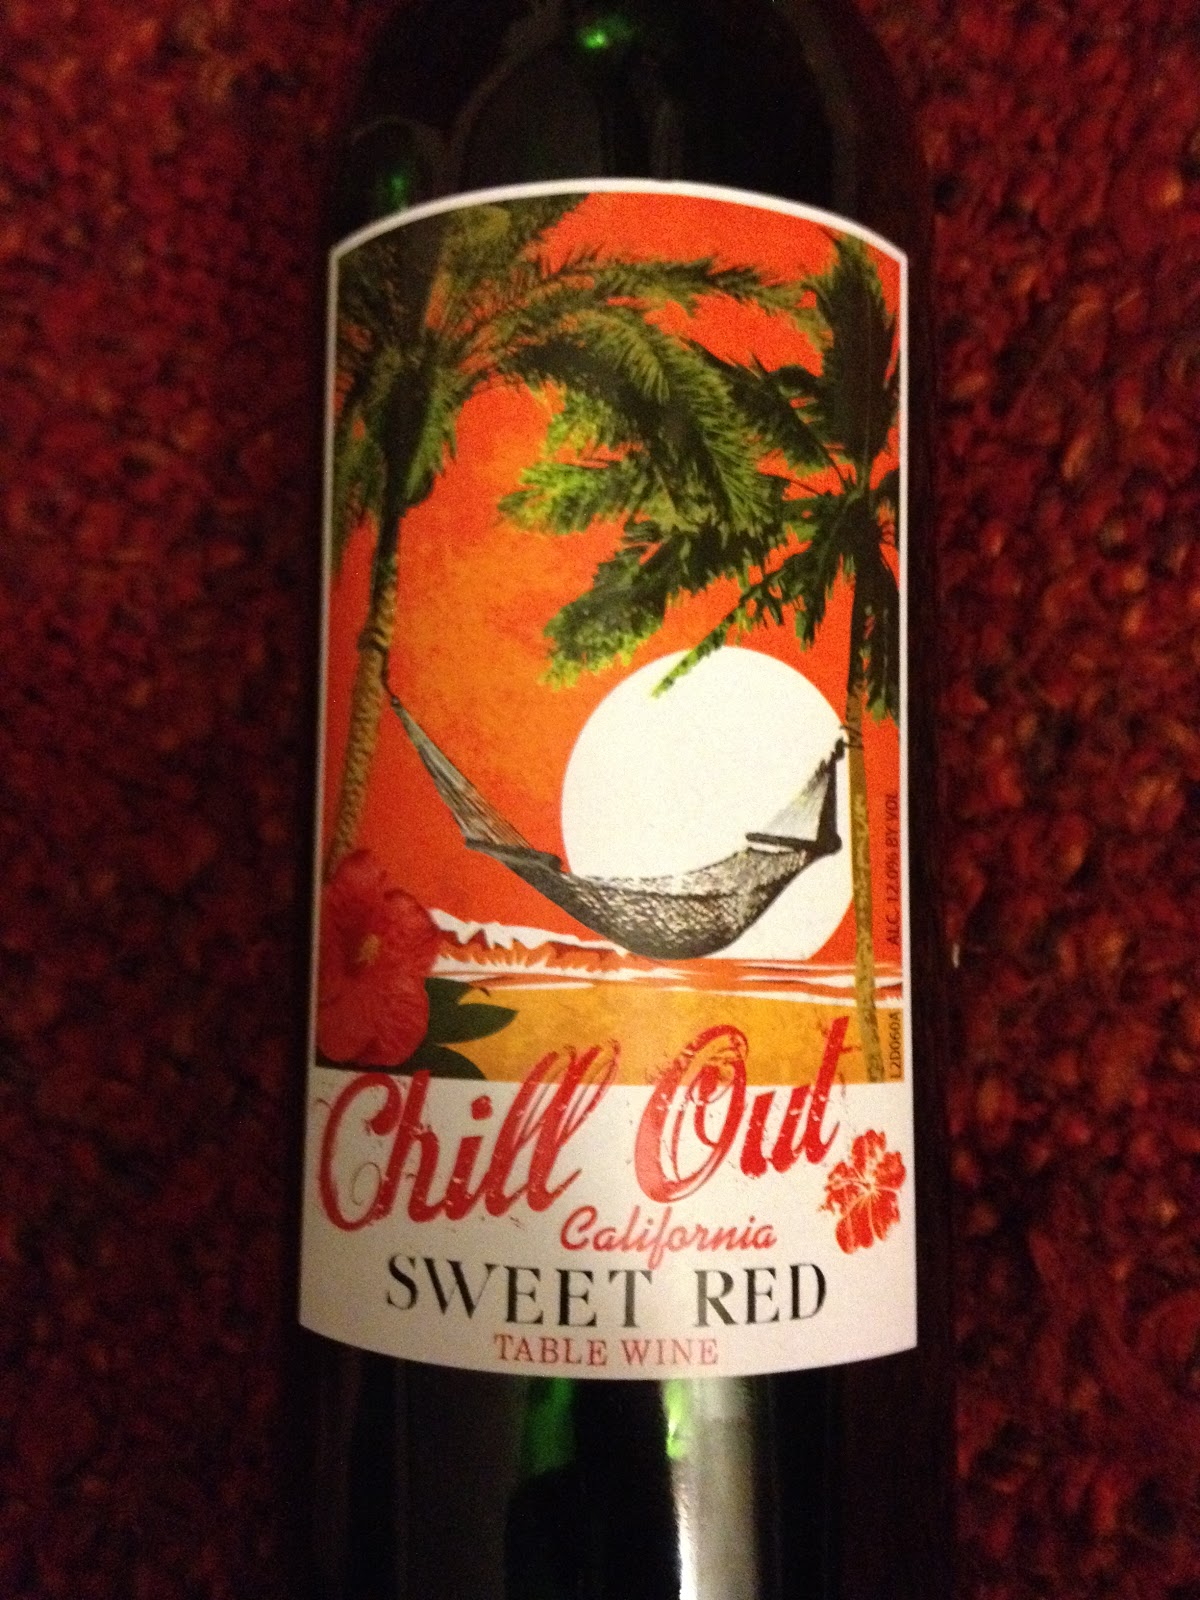 The Five Dollar Wine Expert Chill Out Sweet Red Table Wine